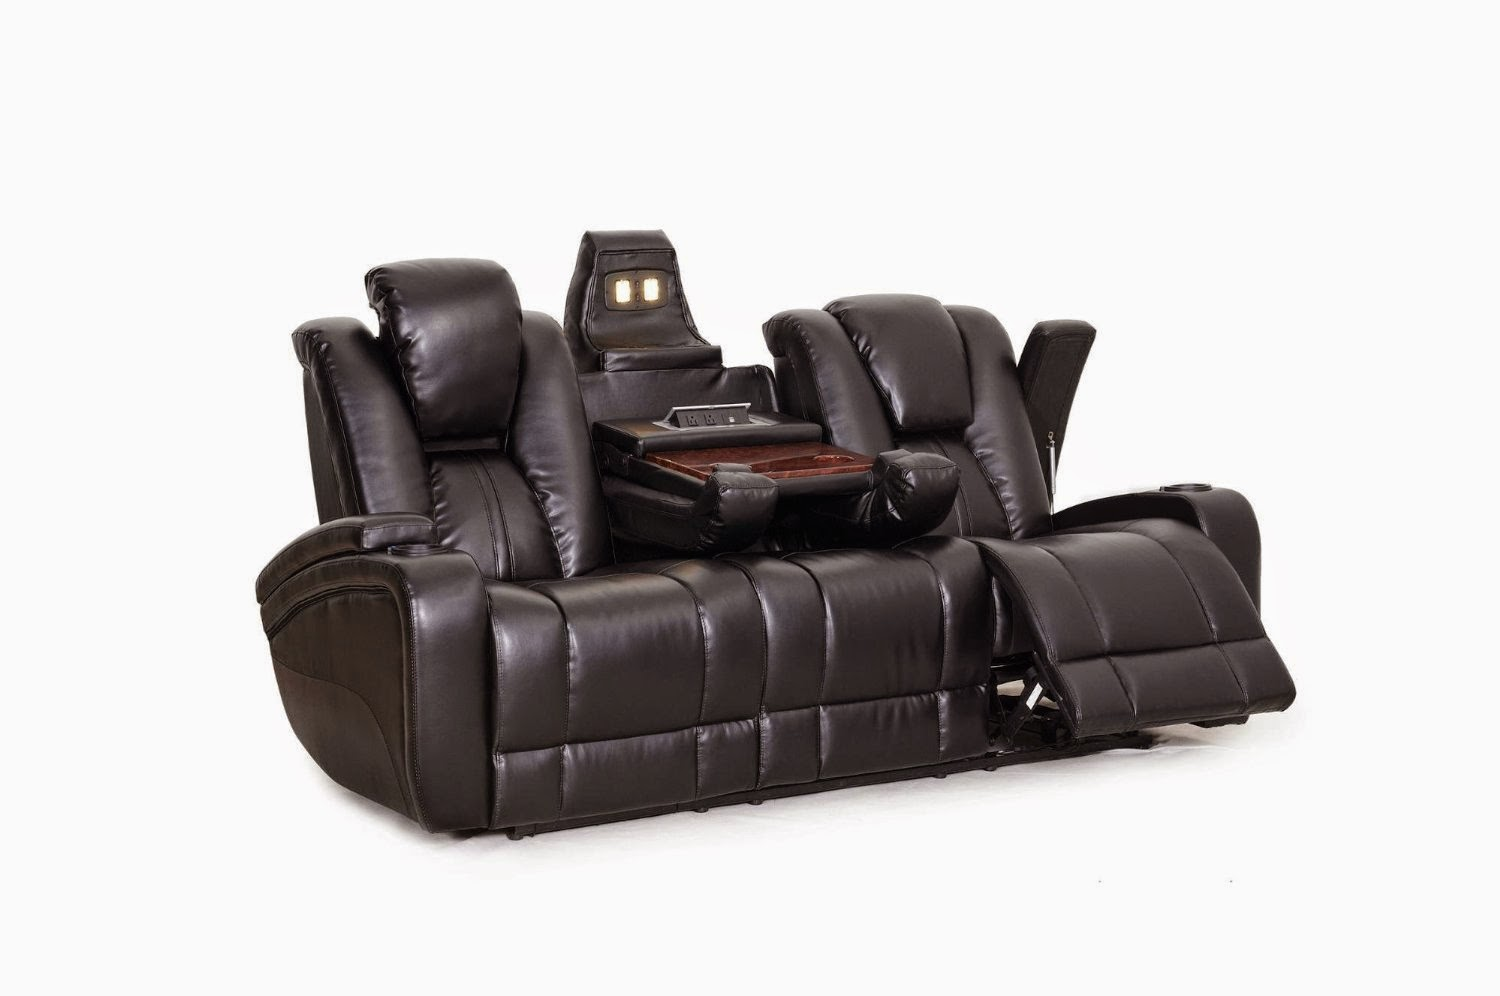 The Best Home Furnishings Reclining Sofa Reviews Power Reclining Furniture Reviews